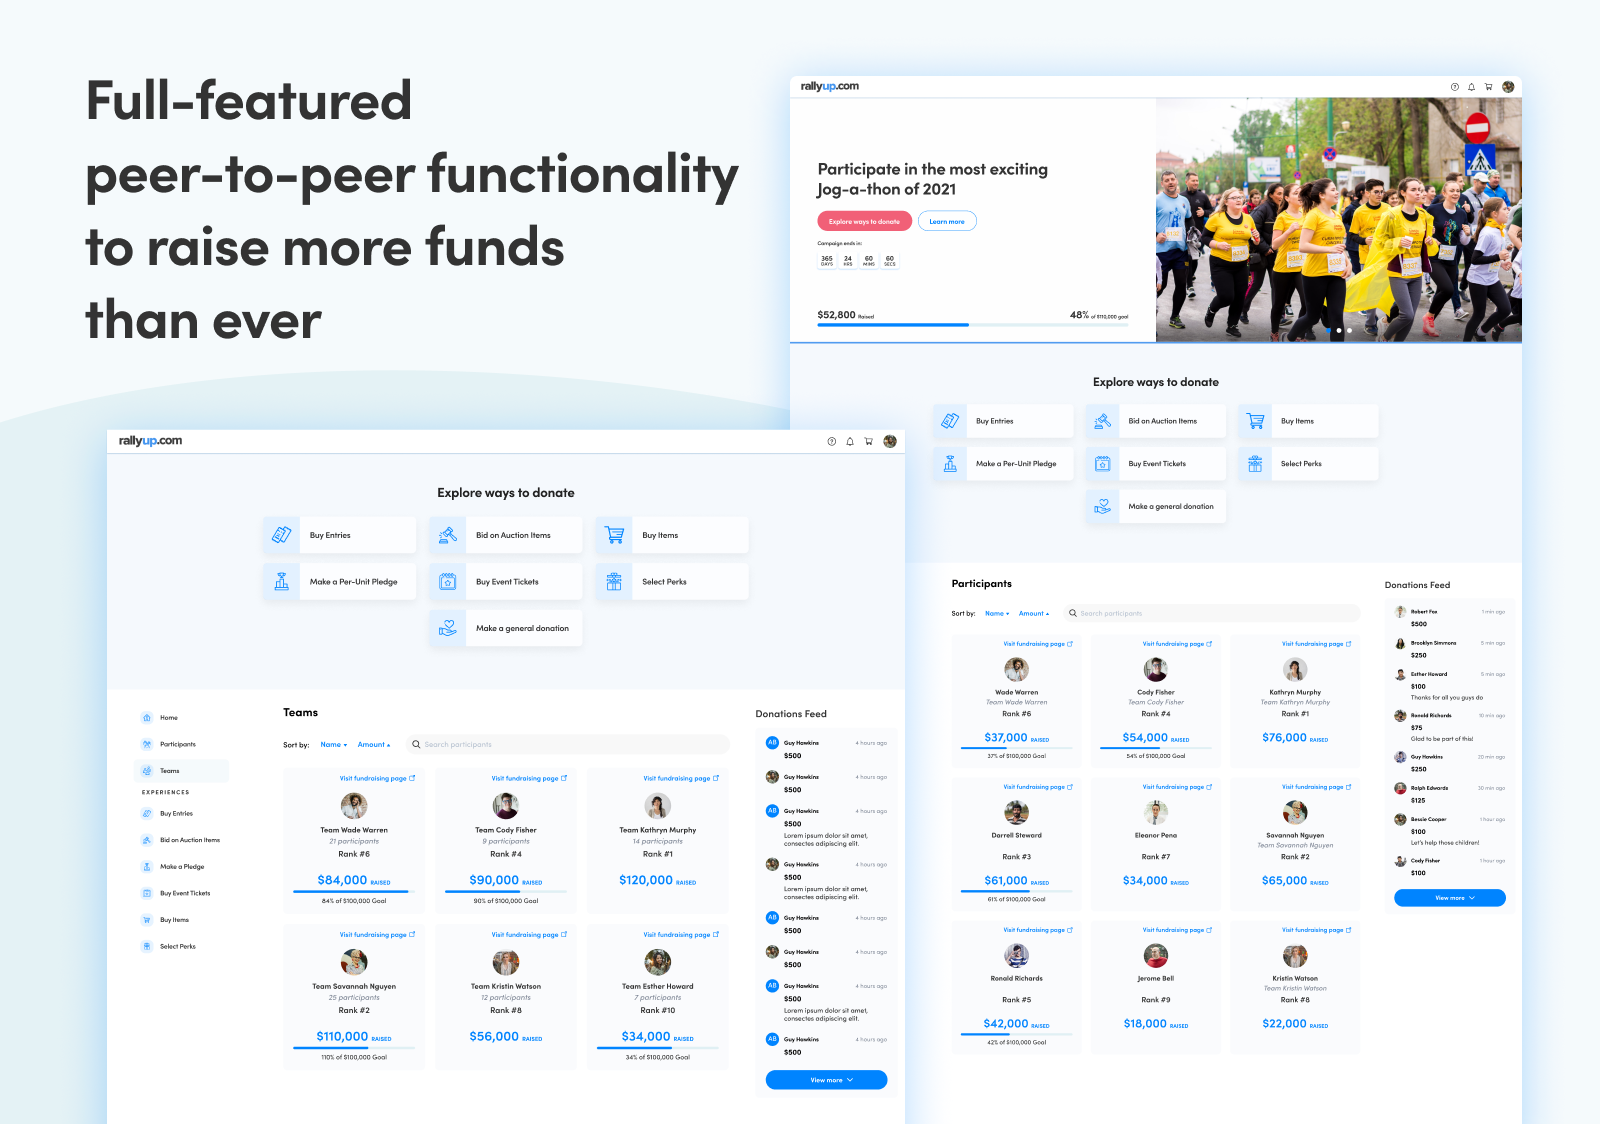 Full-featured peer-to-peer functionality to raise more funds than ever